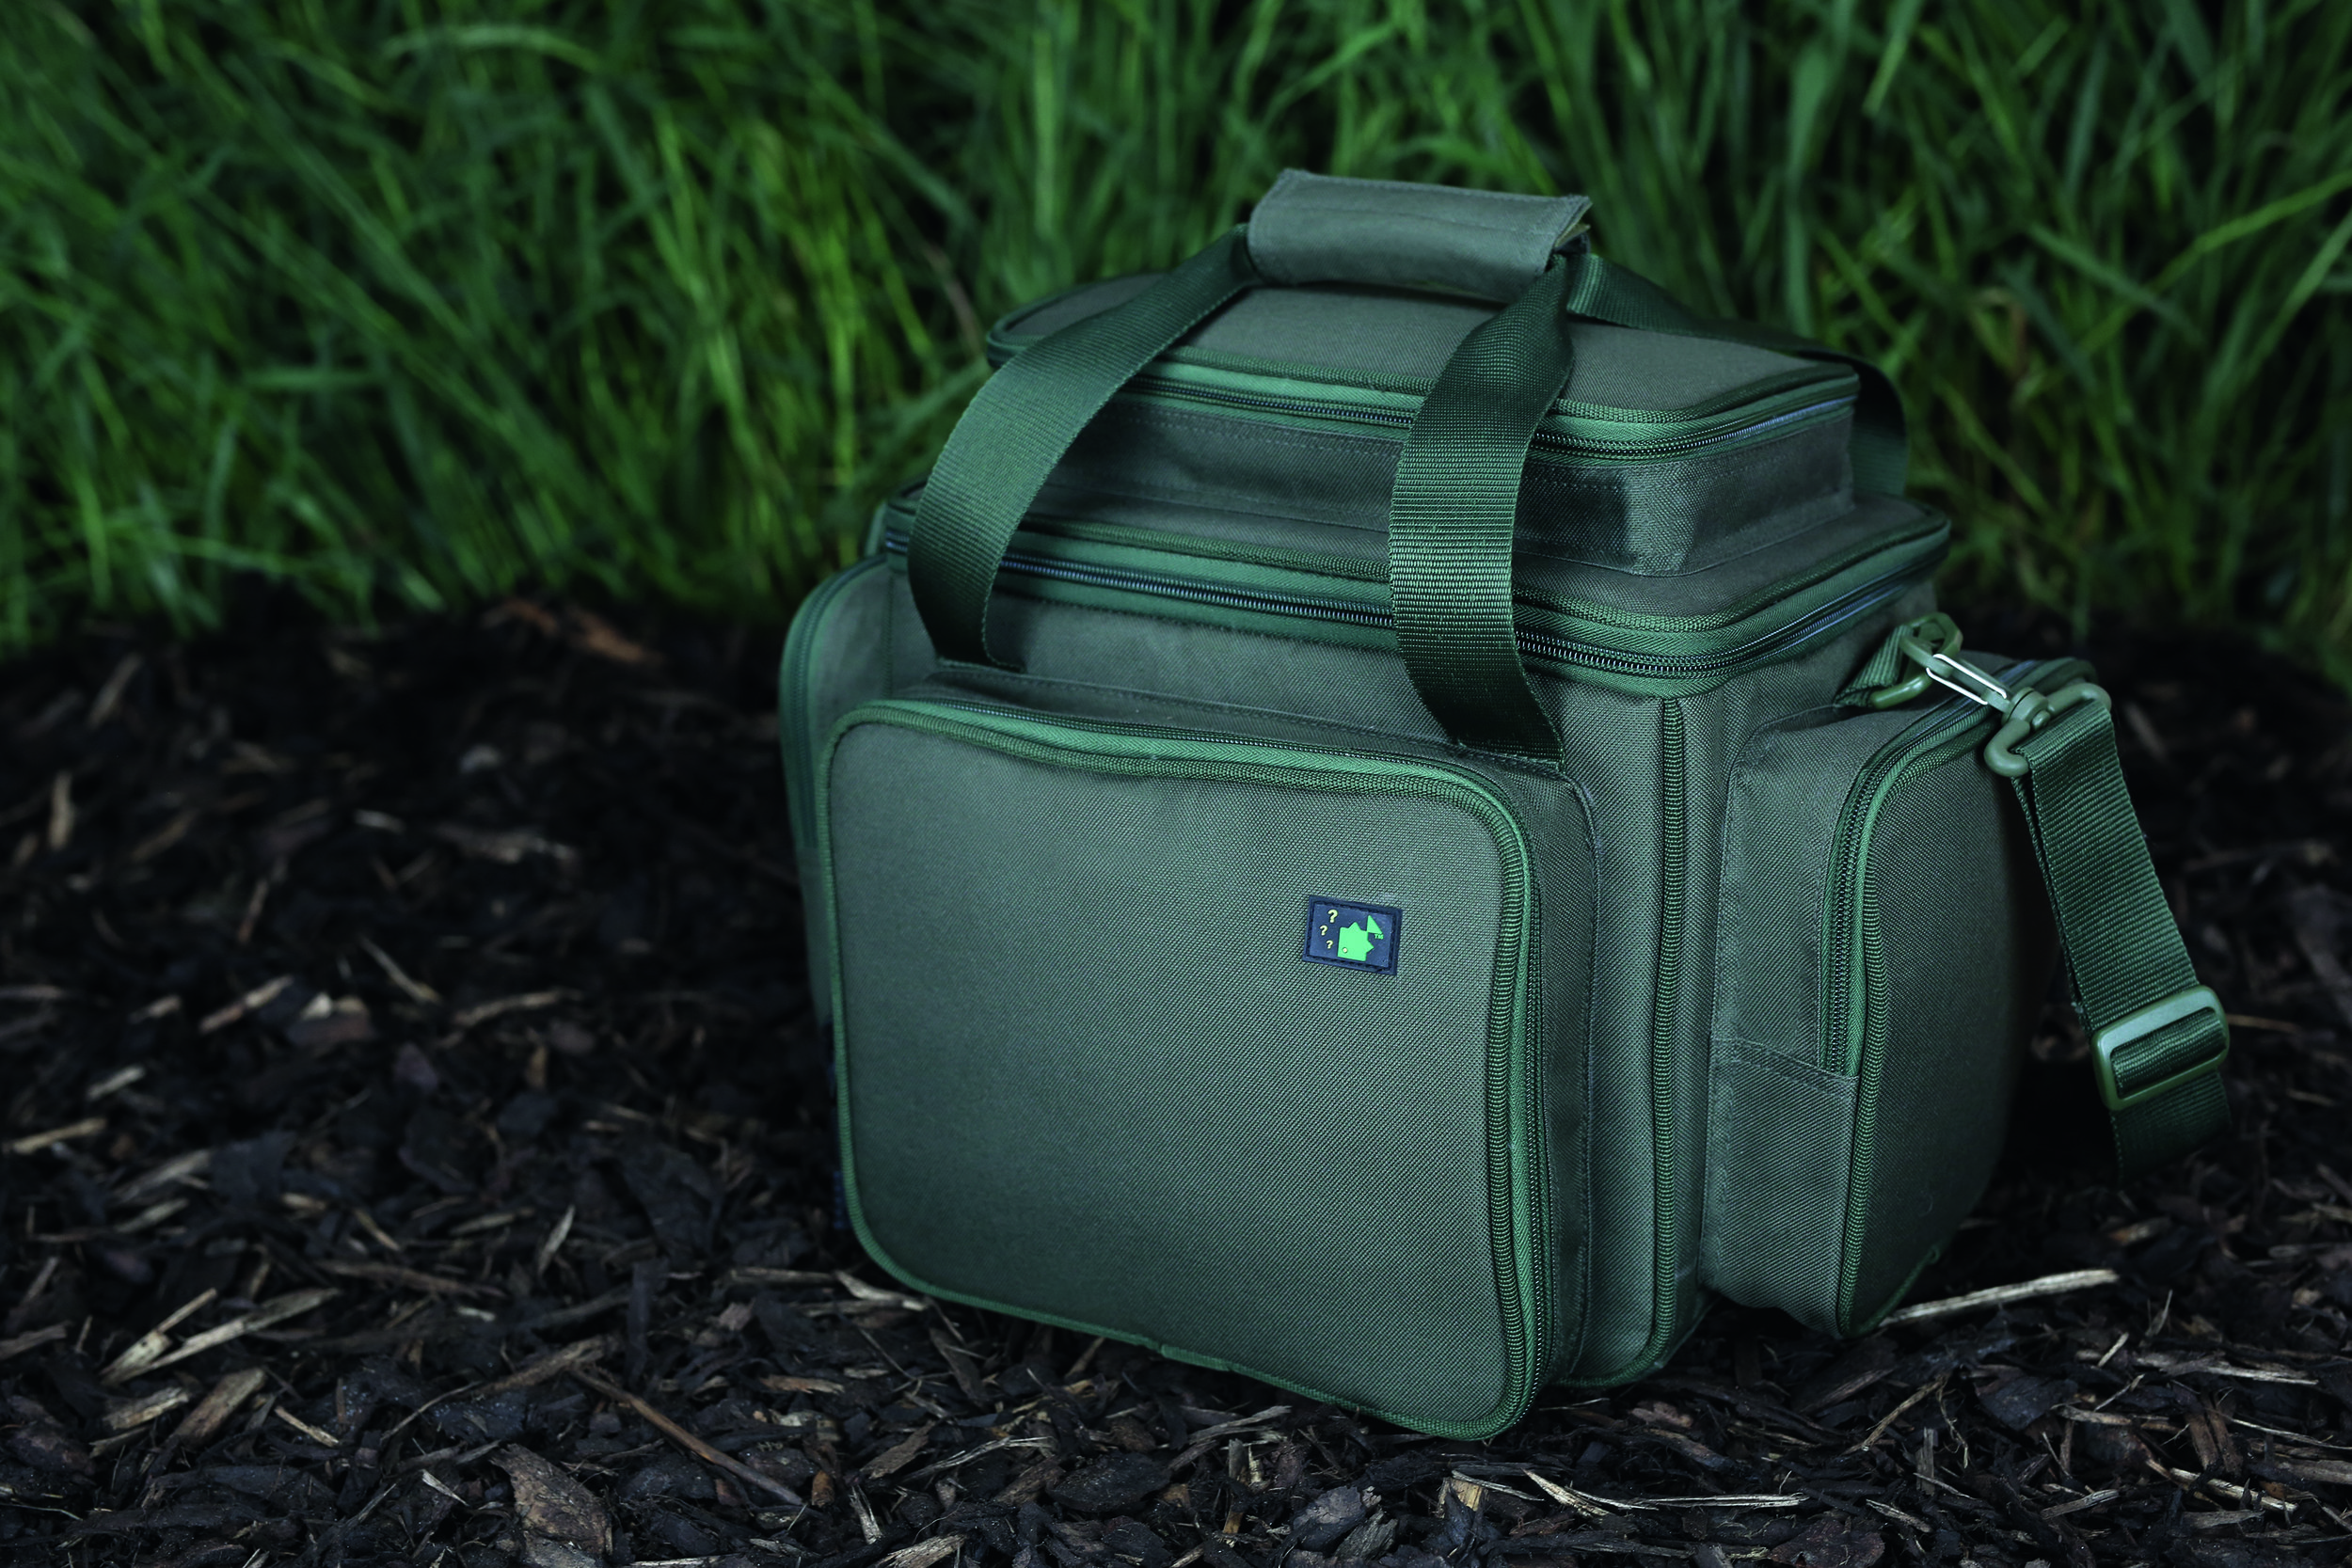 THINKING ANGLERS - Image 1 - Compact Carryall.jpg